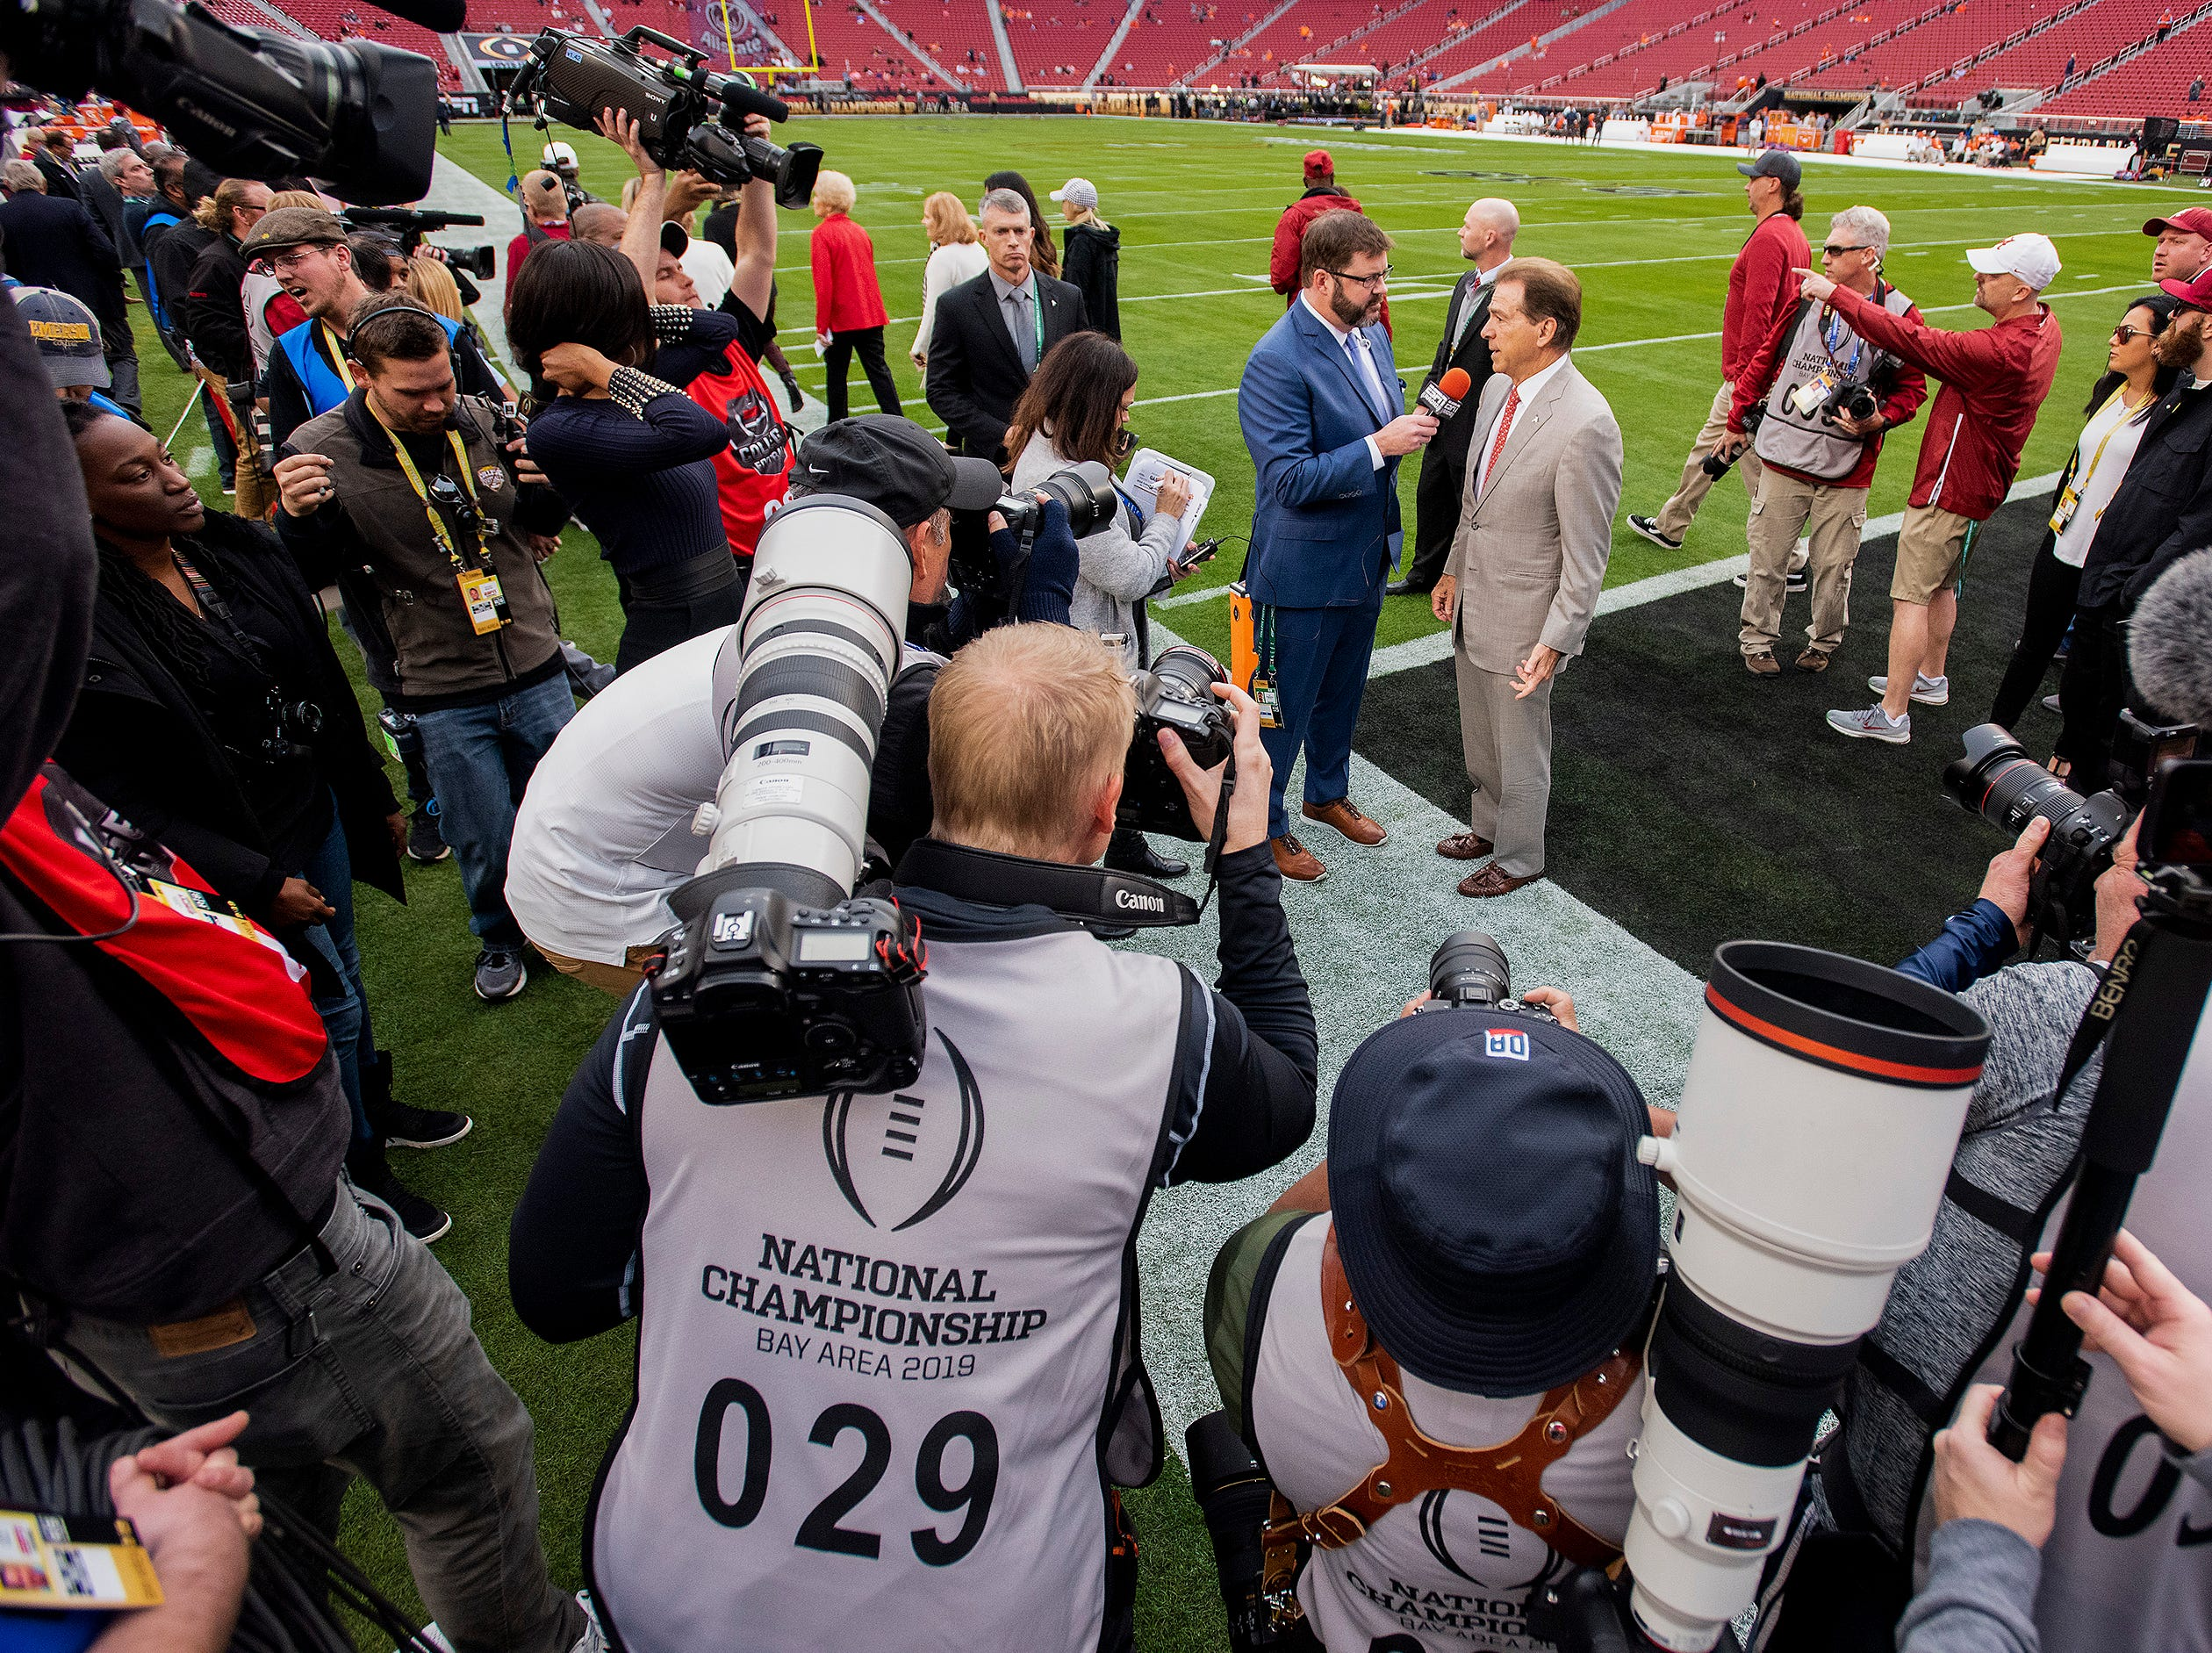 Alabama head coach Nick Saban talks with the media as he arrives for the College Football Playoff National Championship game at Levi's Stadium in Santa Clara, Ca., on Monday January 7, 2019.